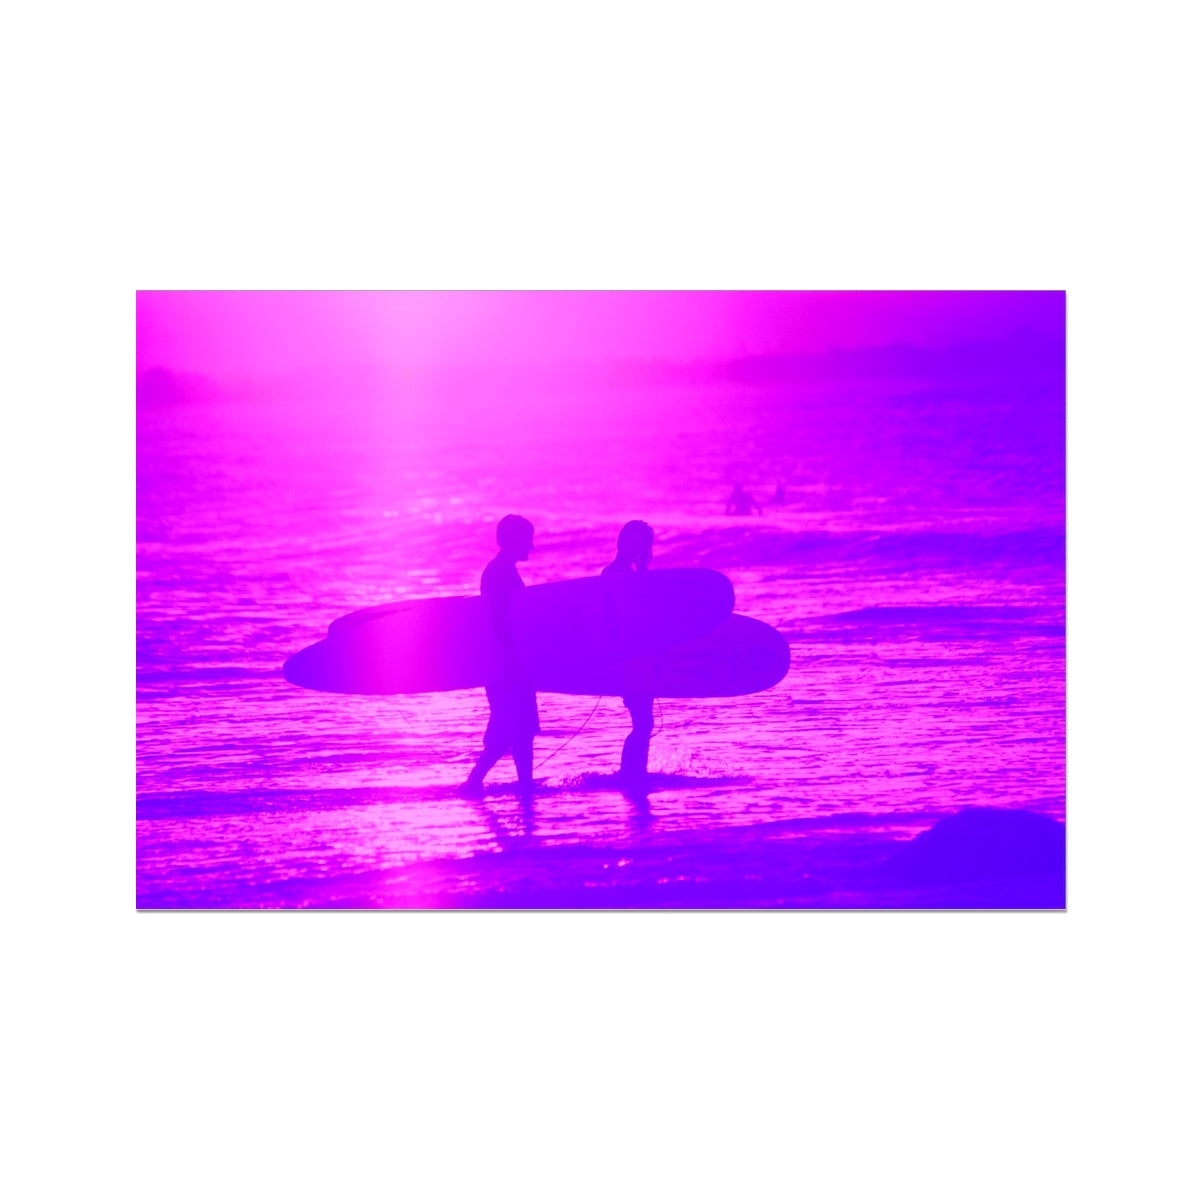 Surf Lovers - Australia - Photo Art Print